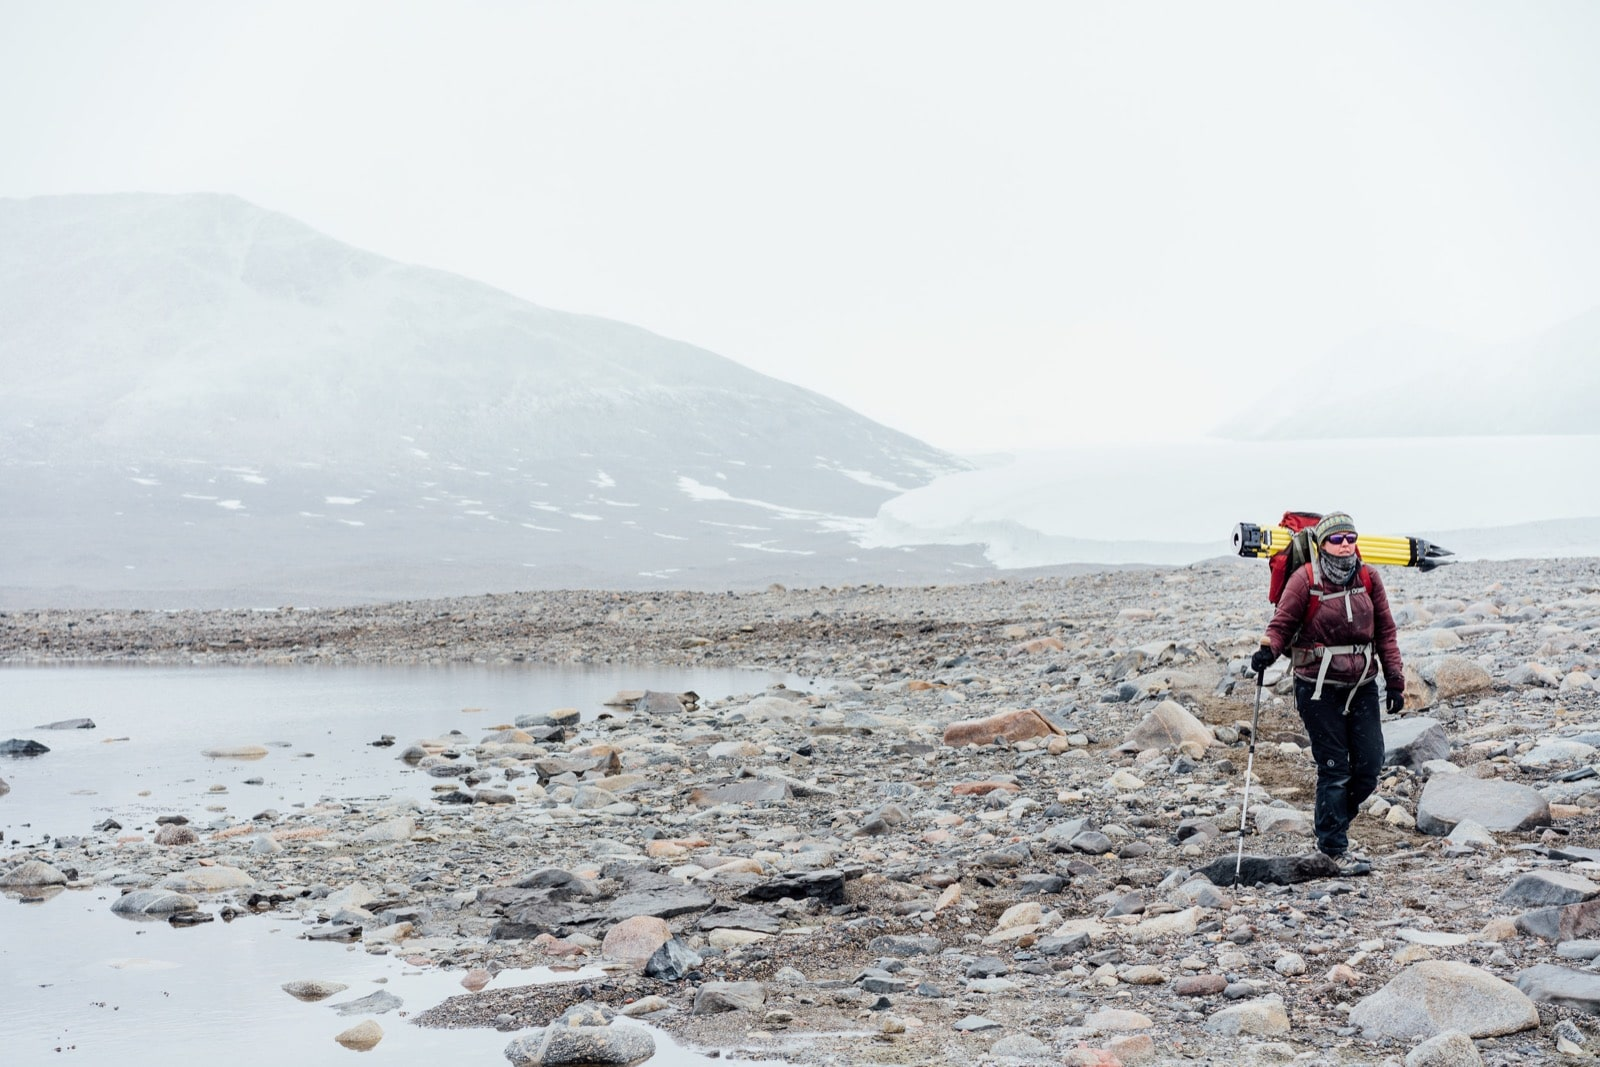 a woman carrying a lot of gear hikes in a rocky barren terrain. to the left is a small bank of water and behind is the edge of a glacier.